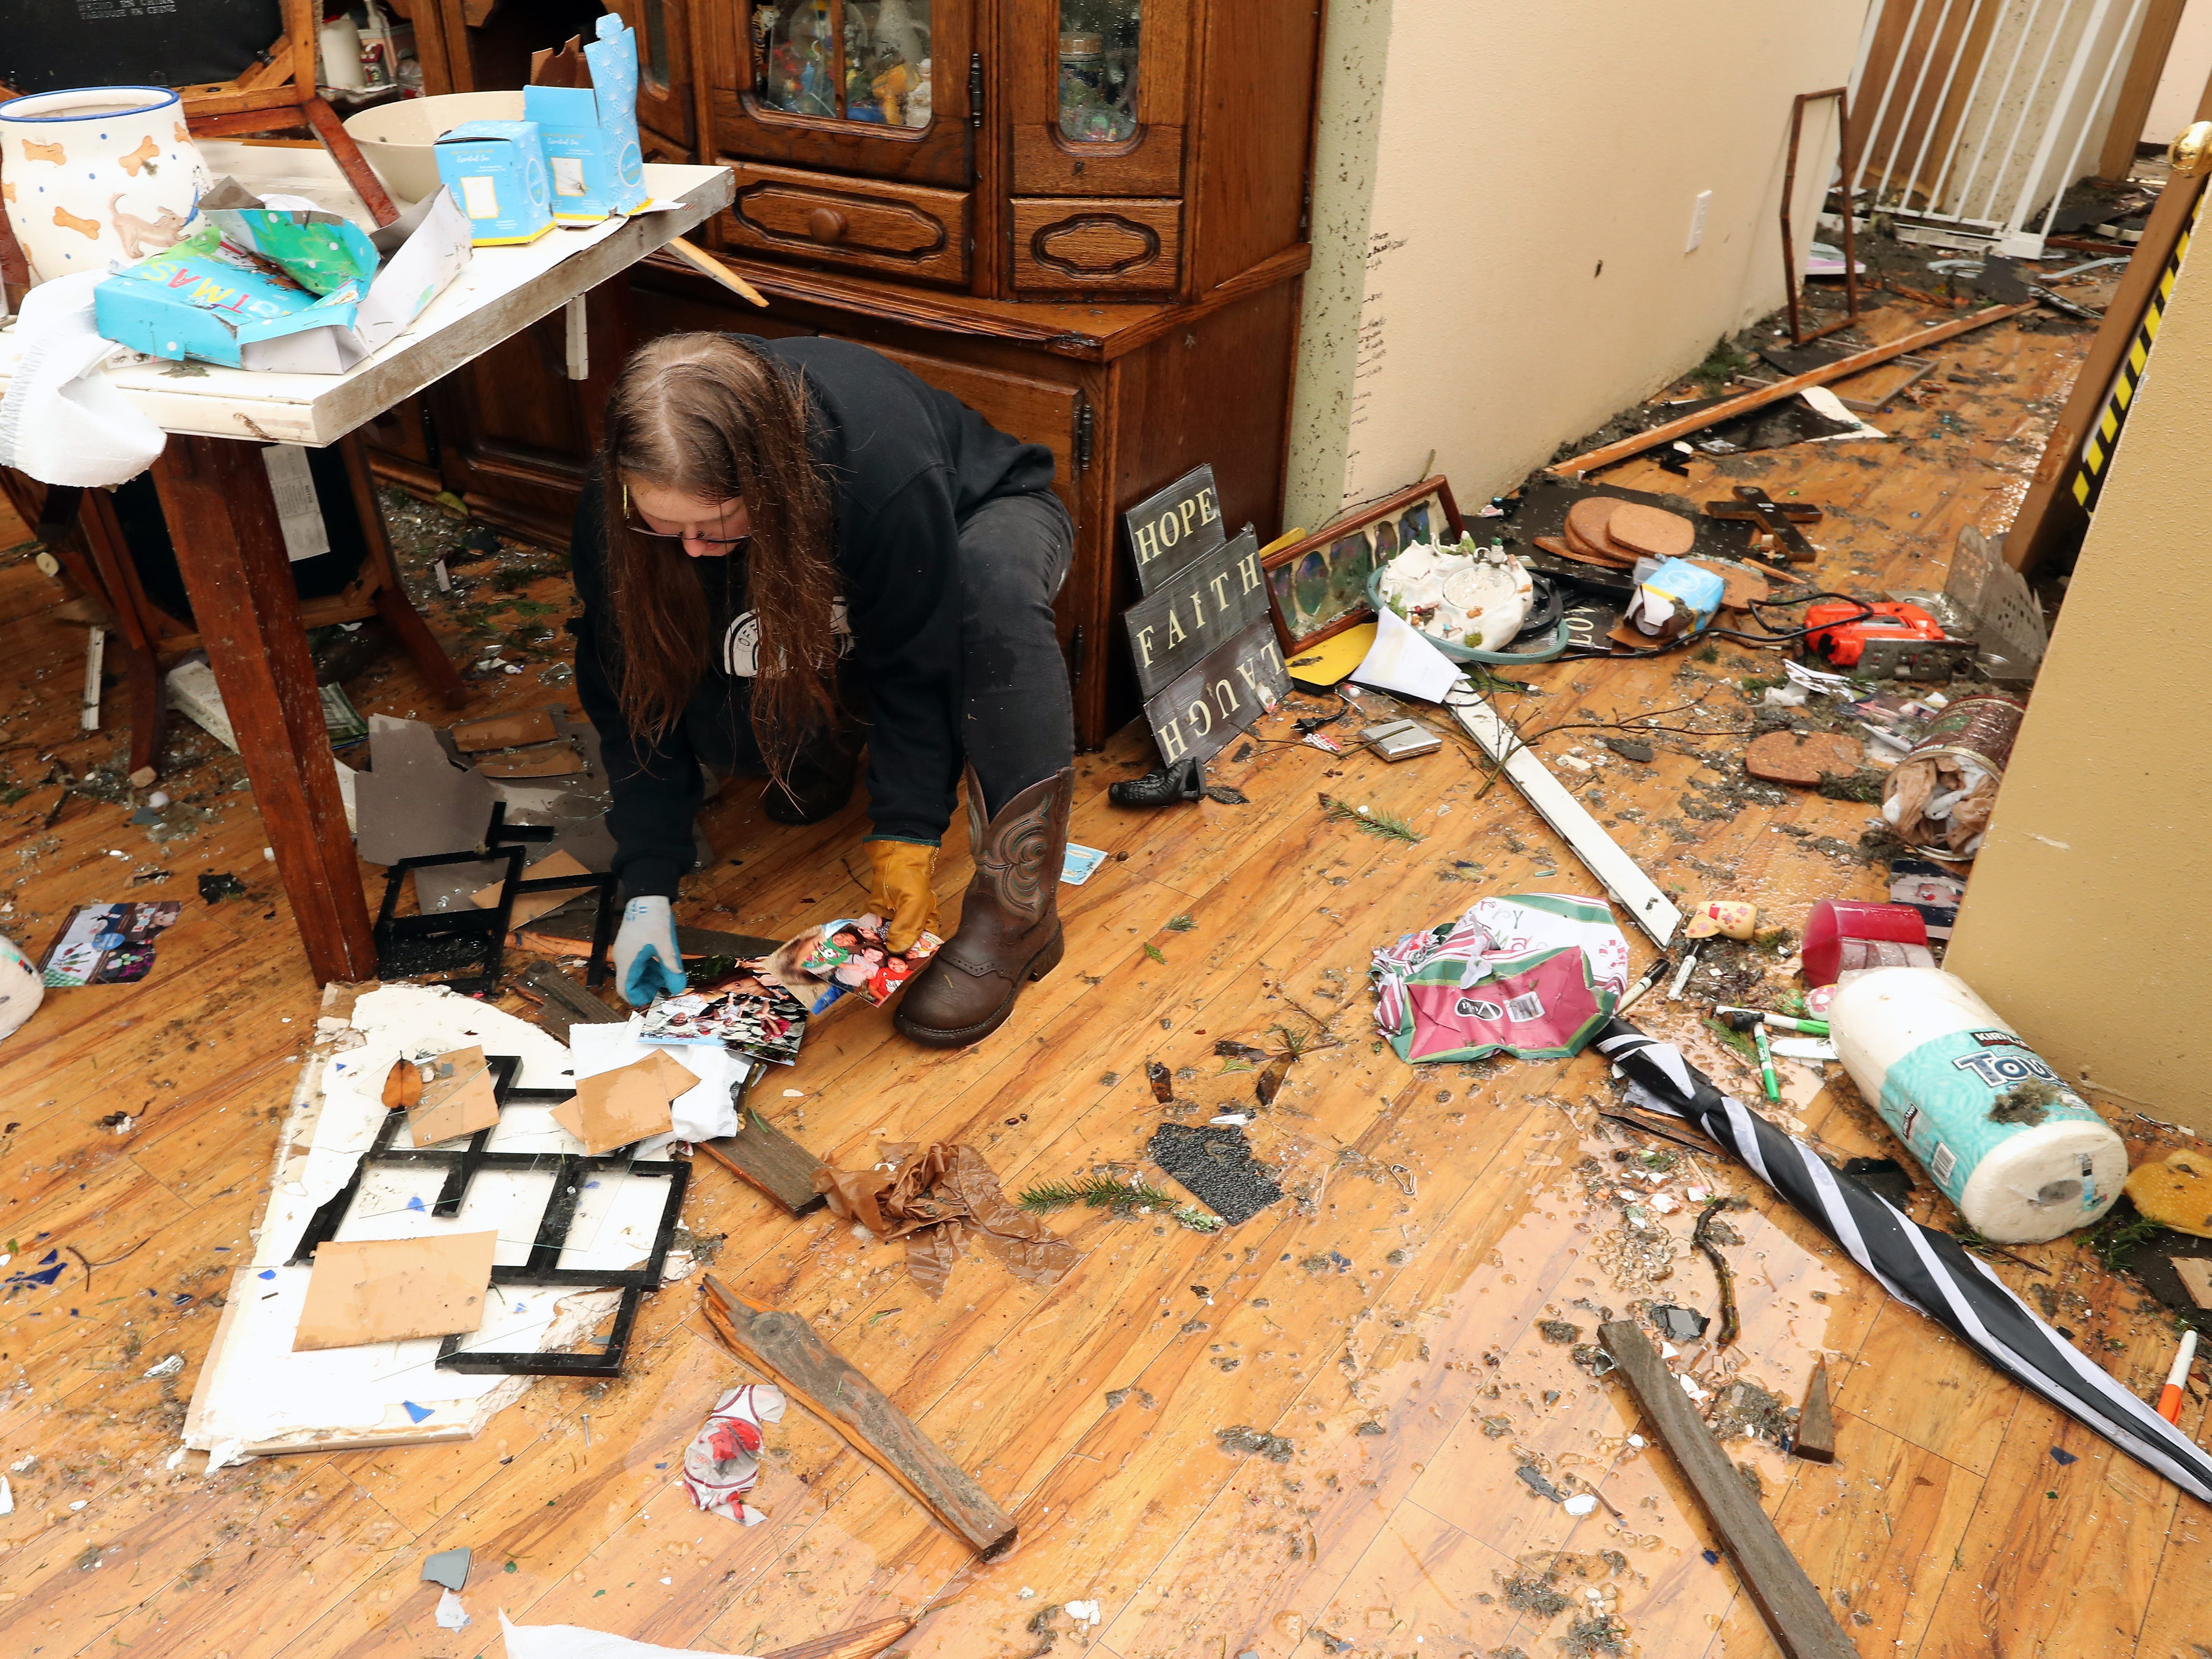 Hannah Mueller tries to salvage photos from her parents' home in Port Orchard, Washington on Wednesday, December 19, 2018. A tornado touched down in the area on Tuesday.